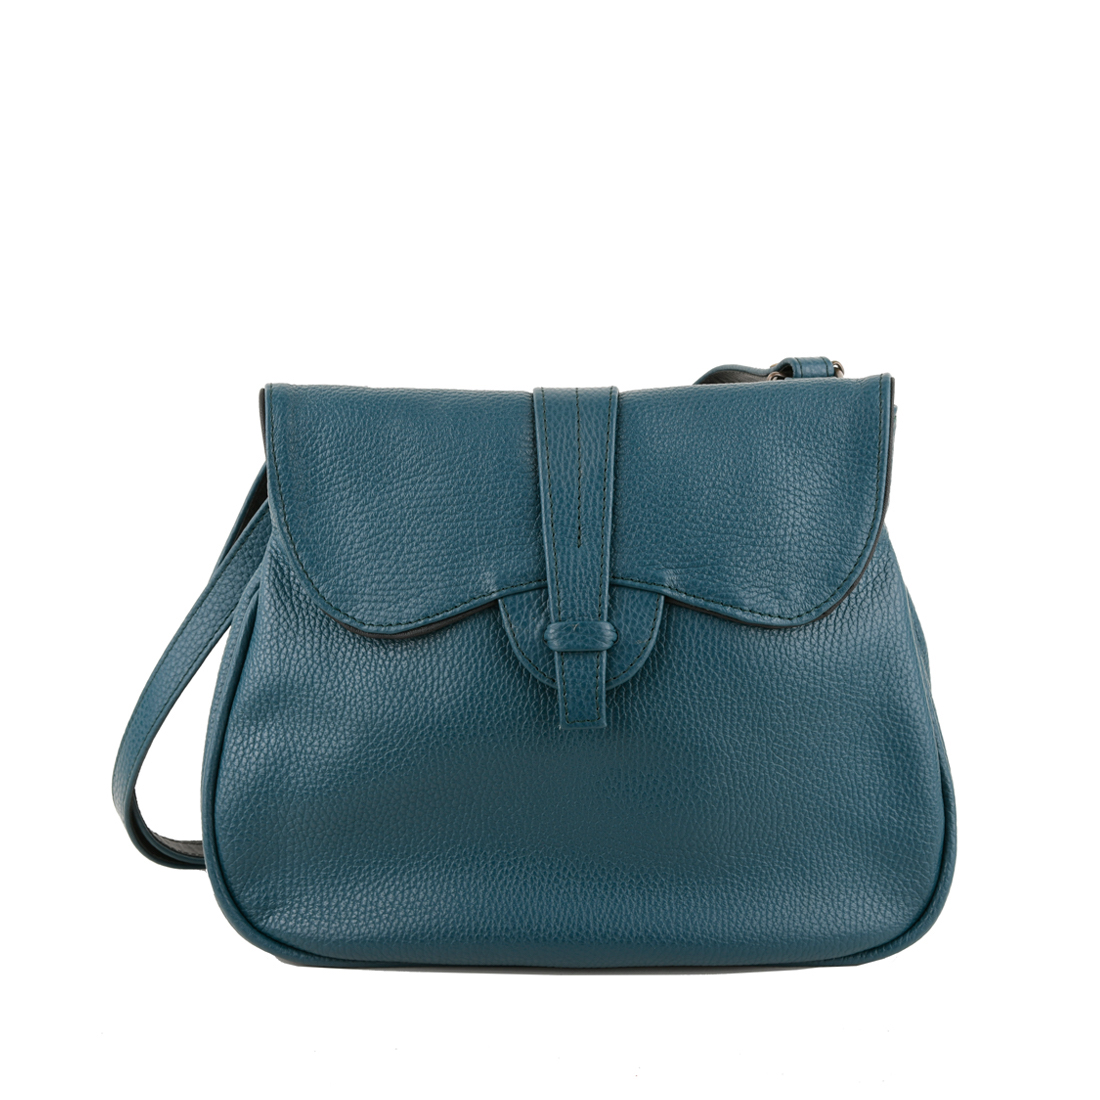 Beth Teal Across Body Leather Bag